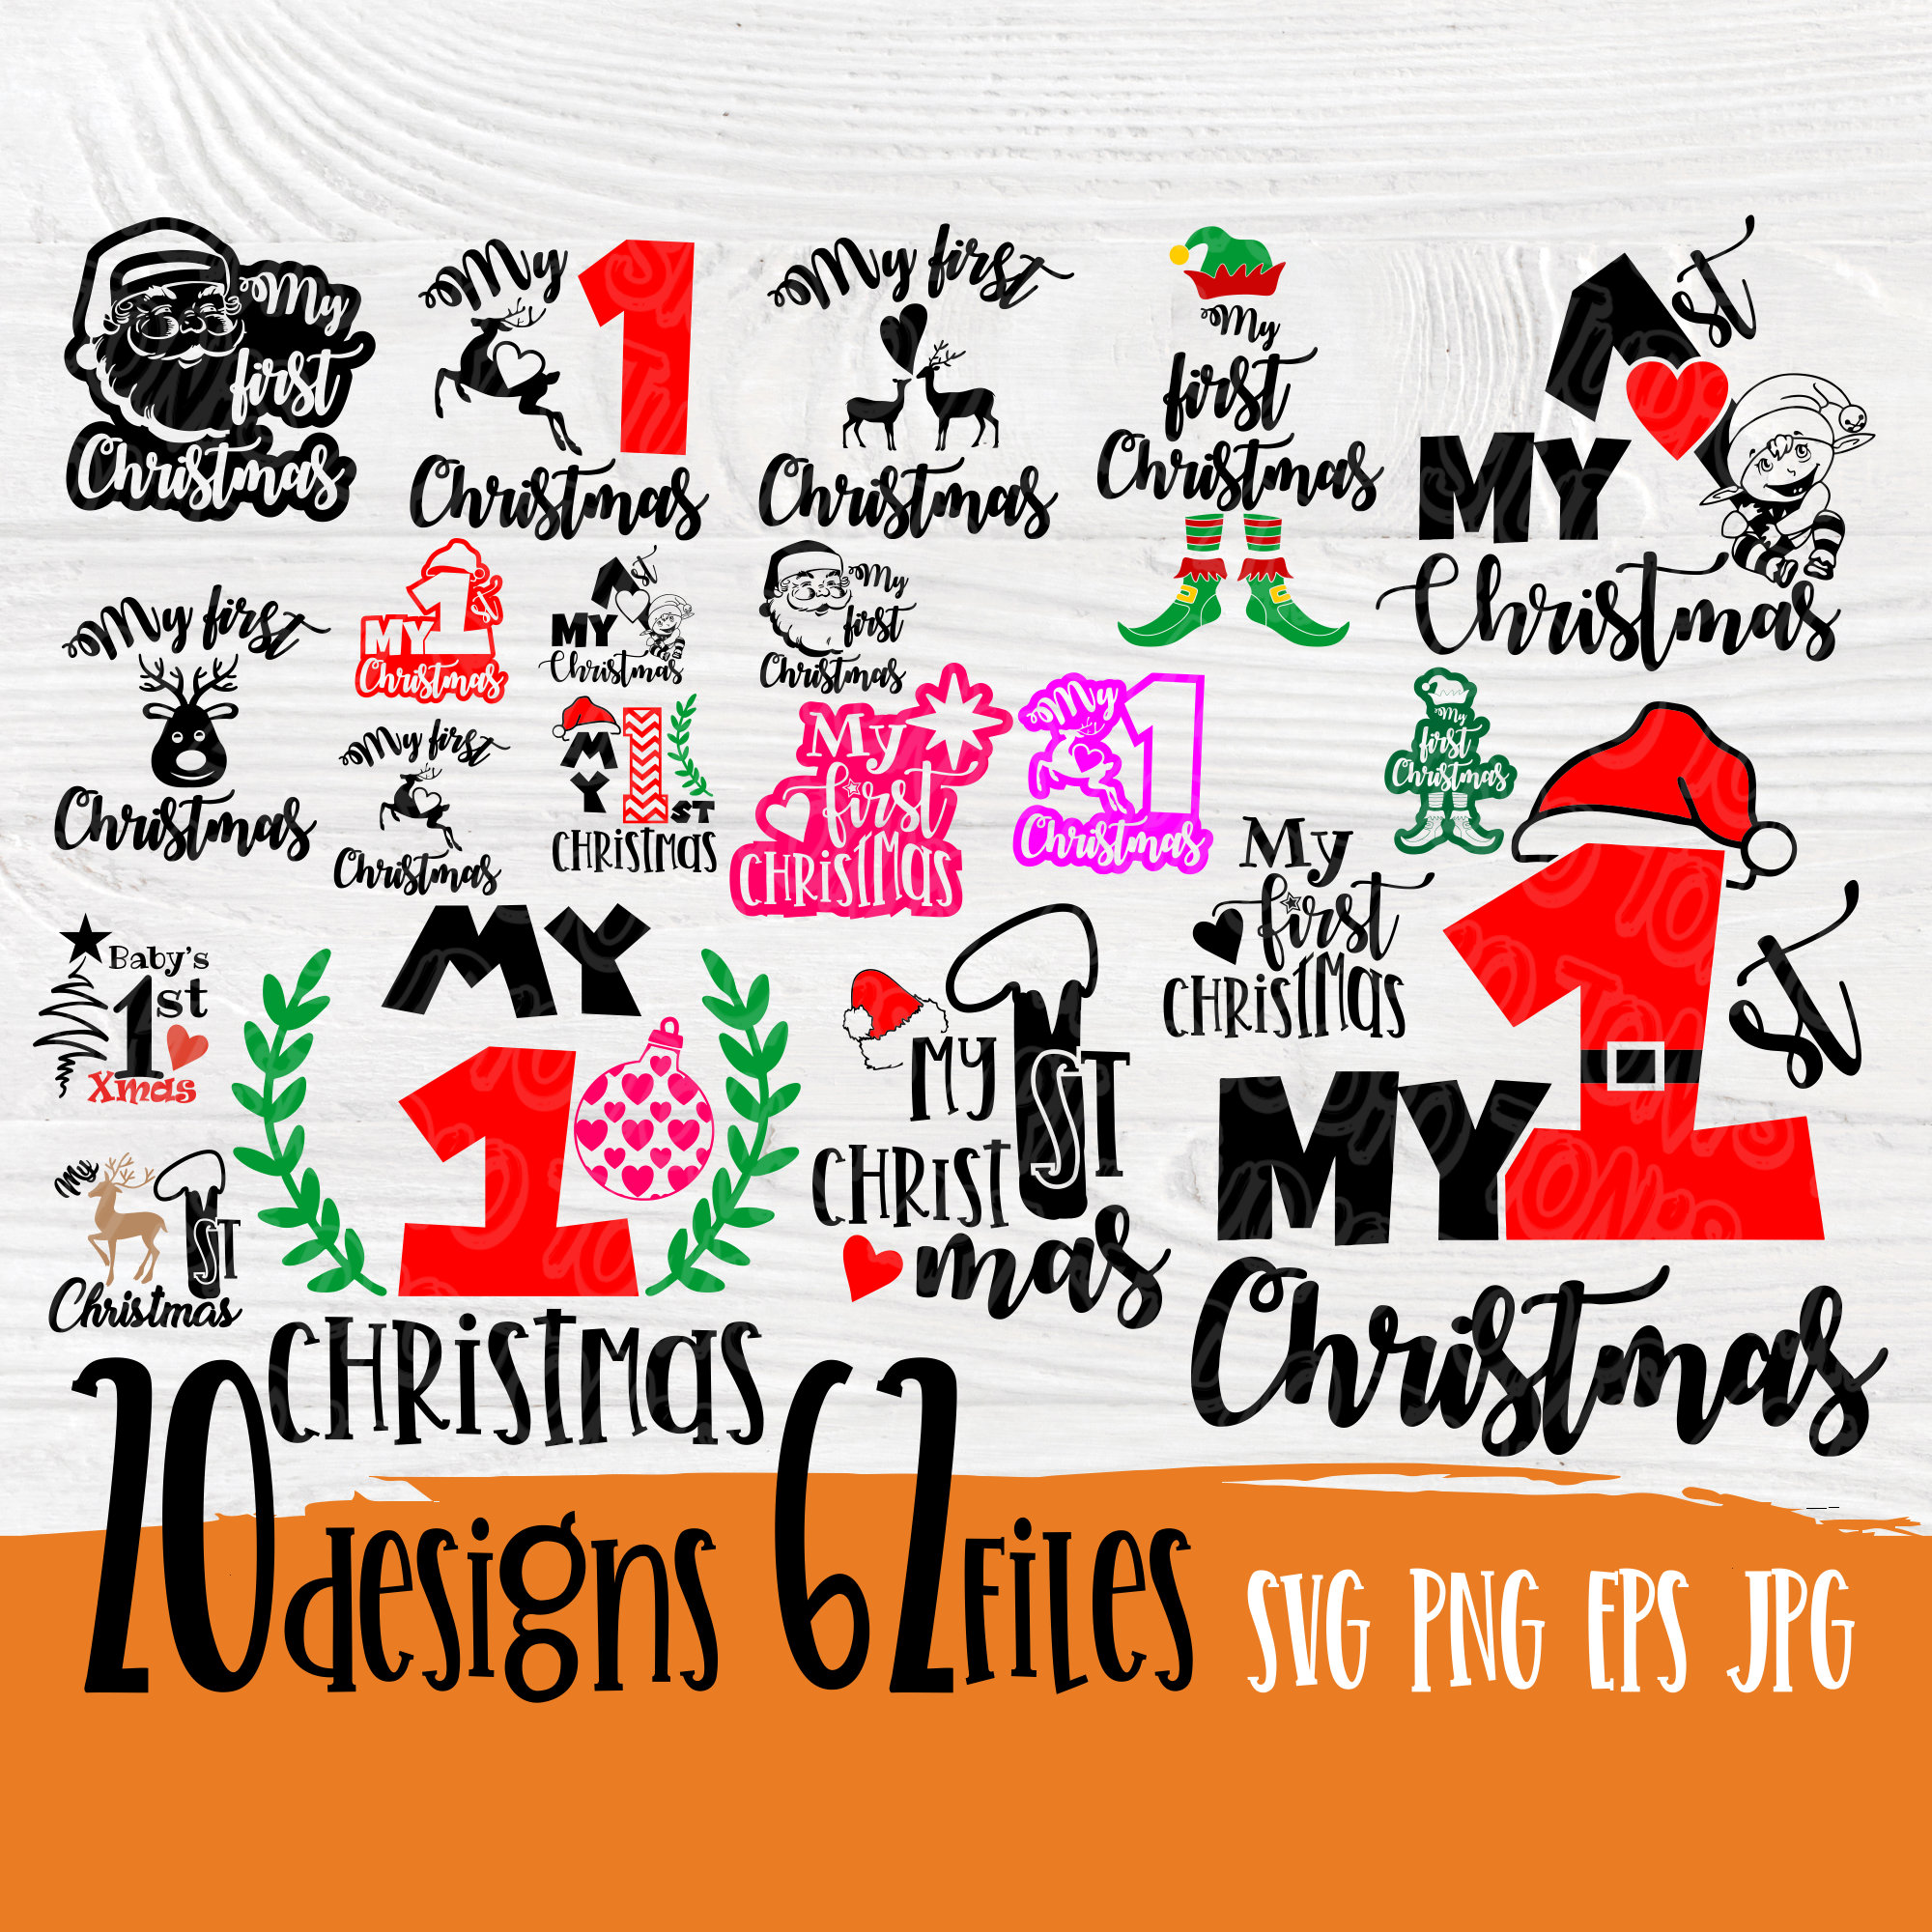 My First Christmas Svg Svg Bundle My 1st Christmas Christmas Svg Cricut And Silhouette Cut Files Cutting Files Svg Designs